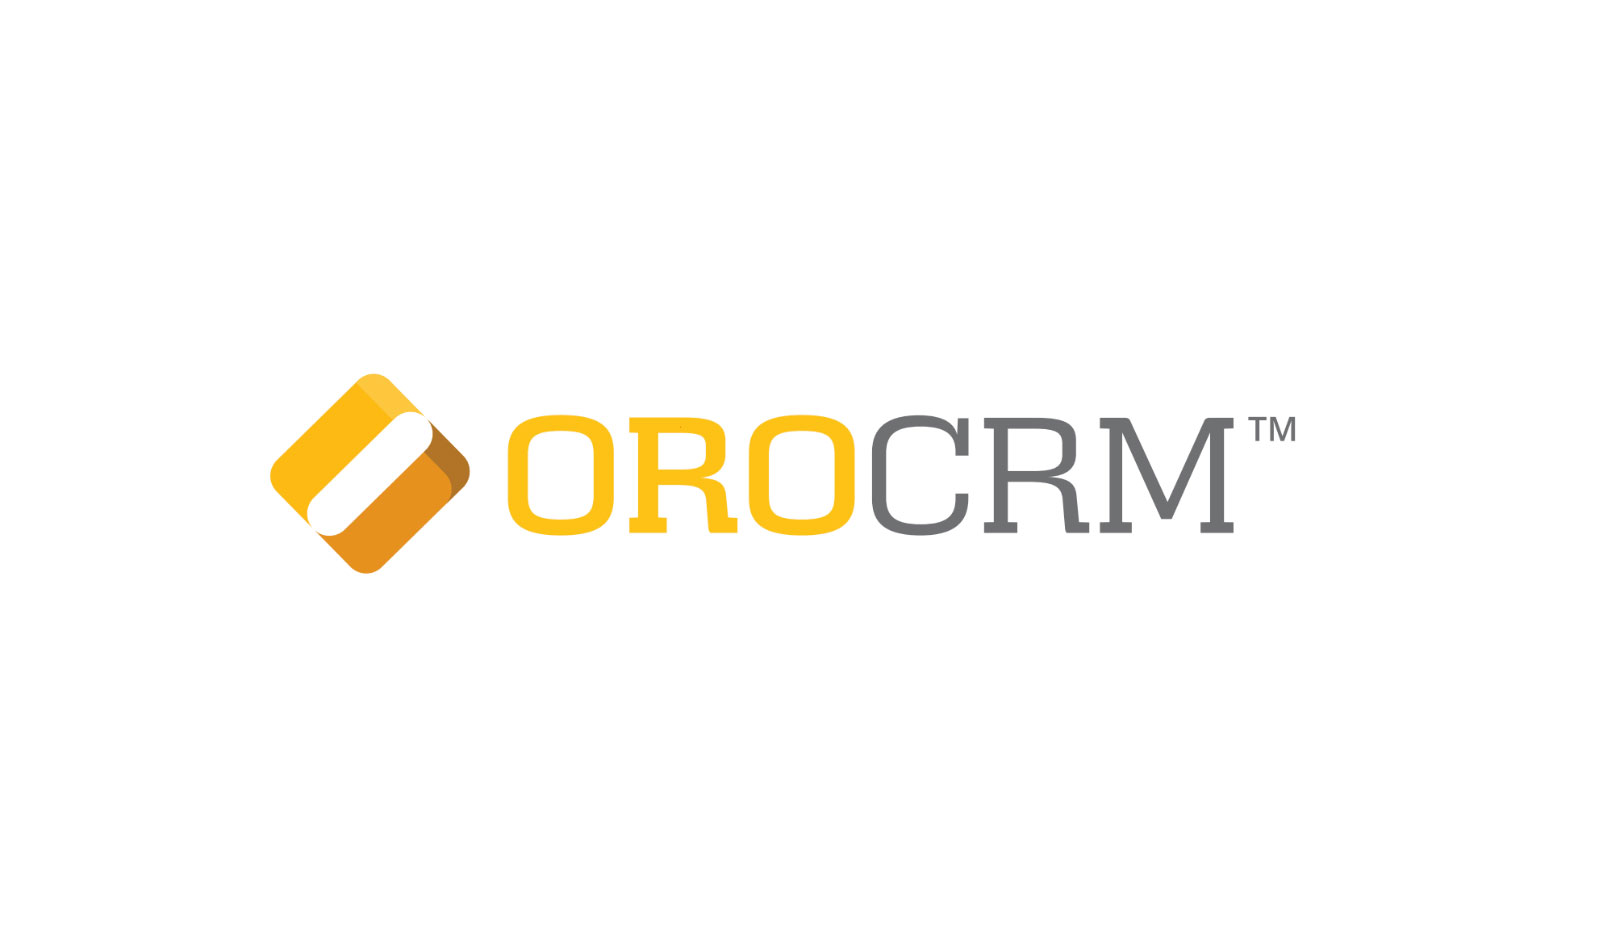 How To Install OROCRM On Your Local Machine